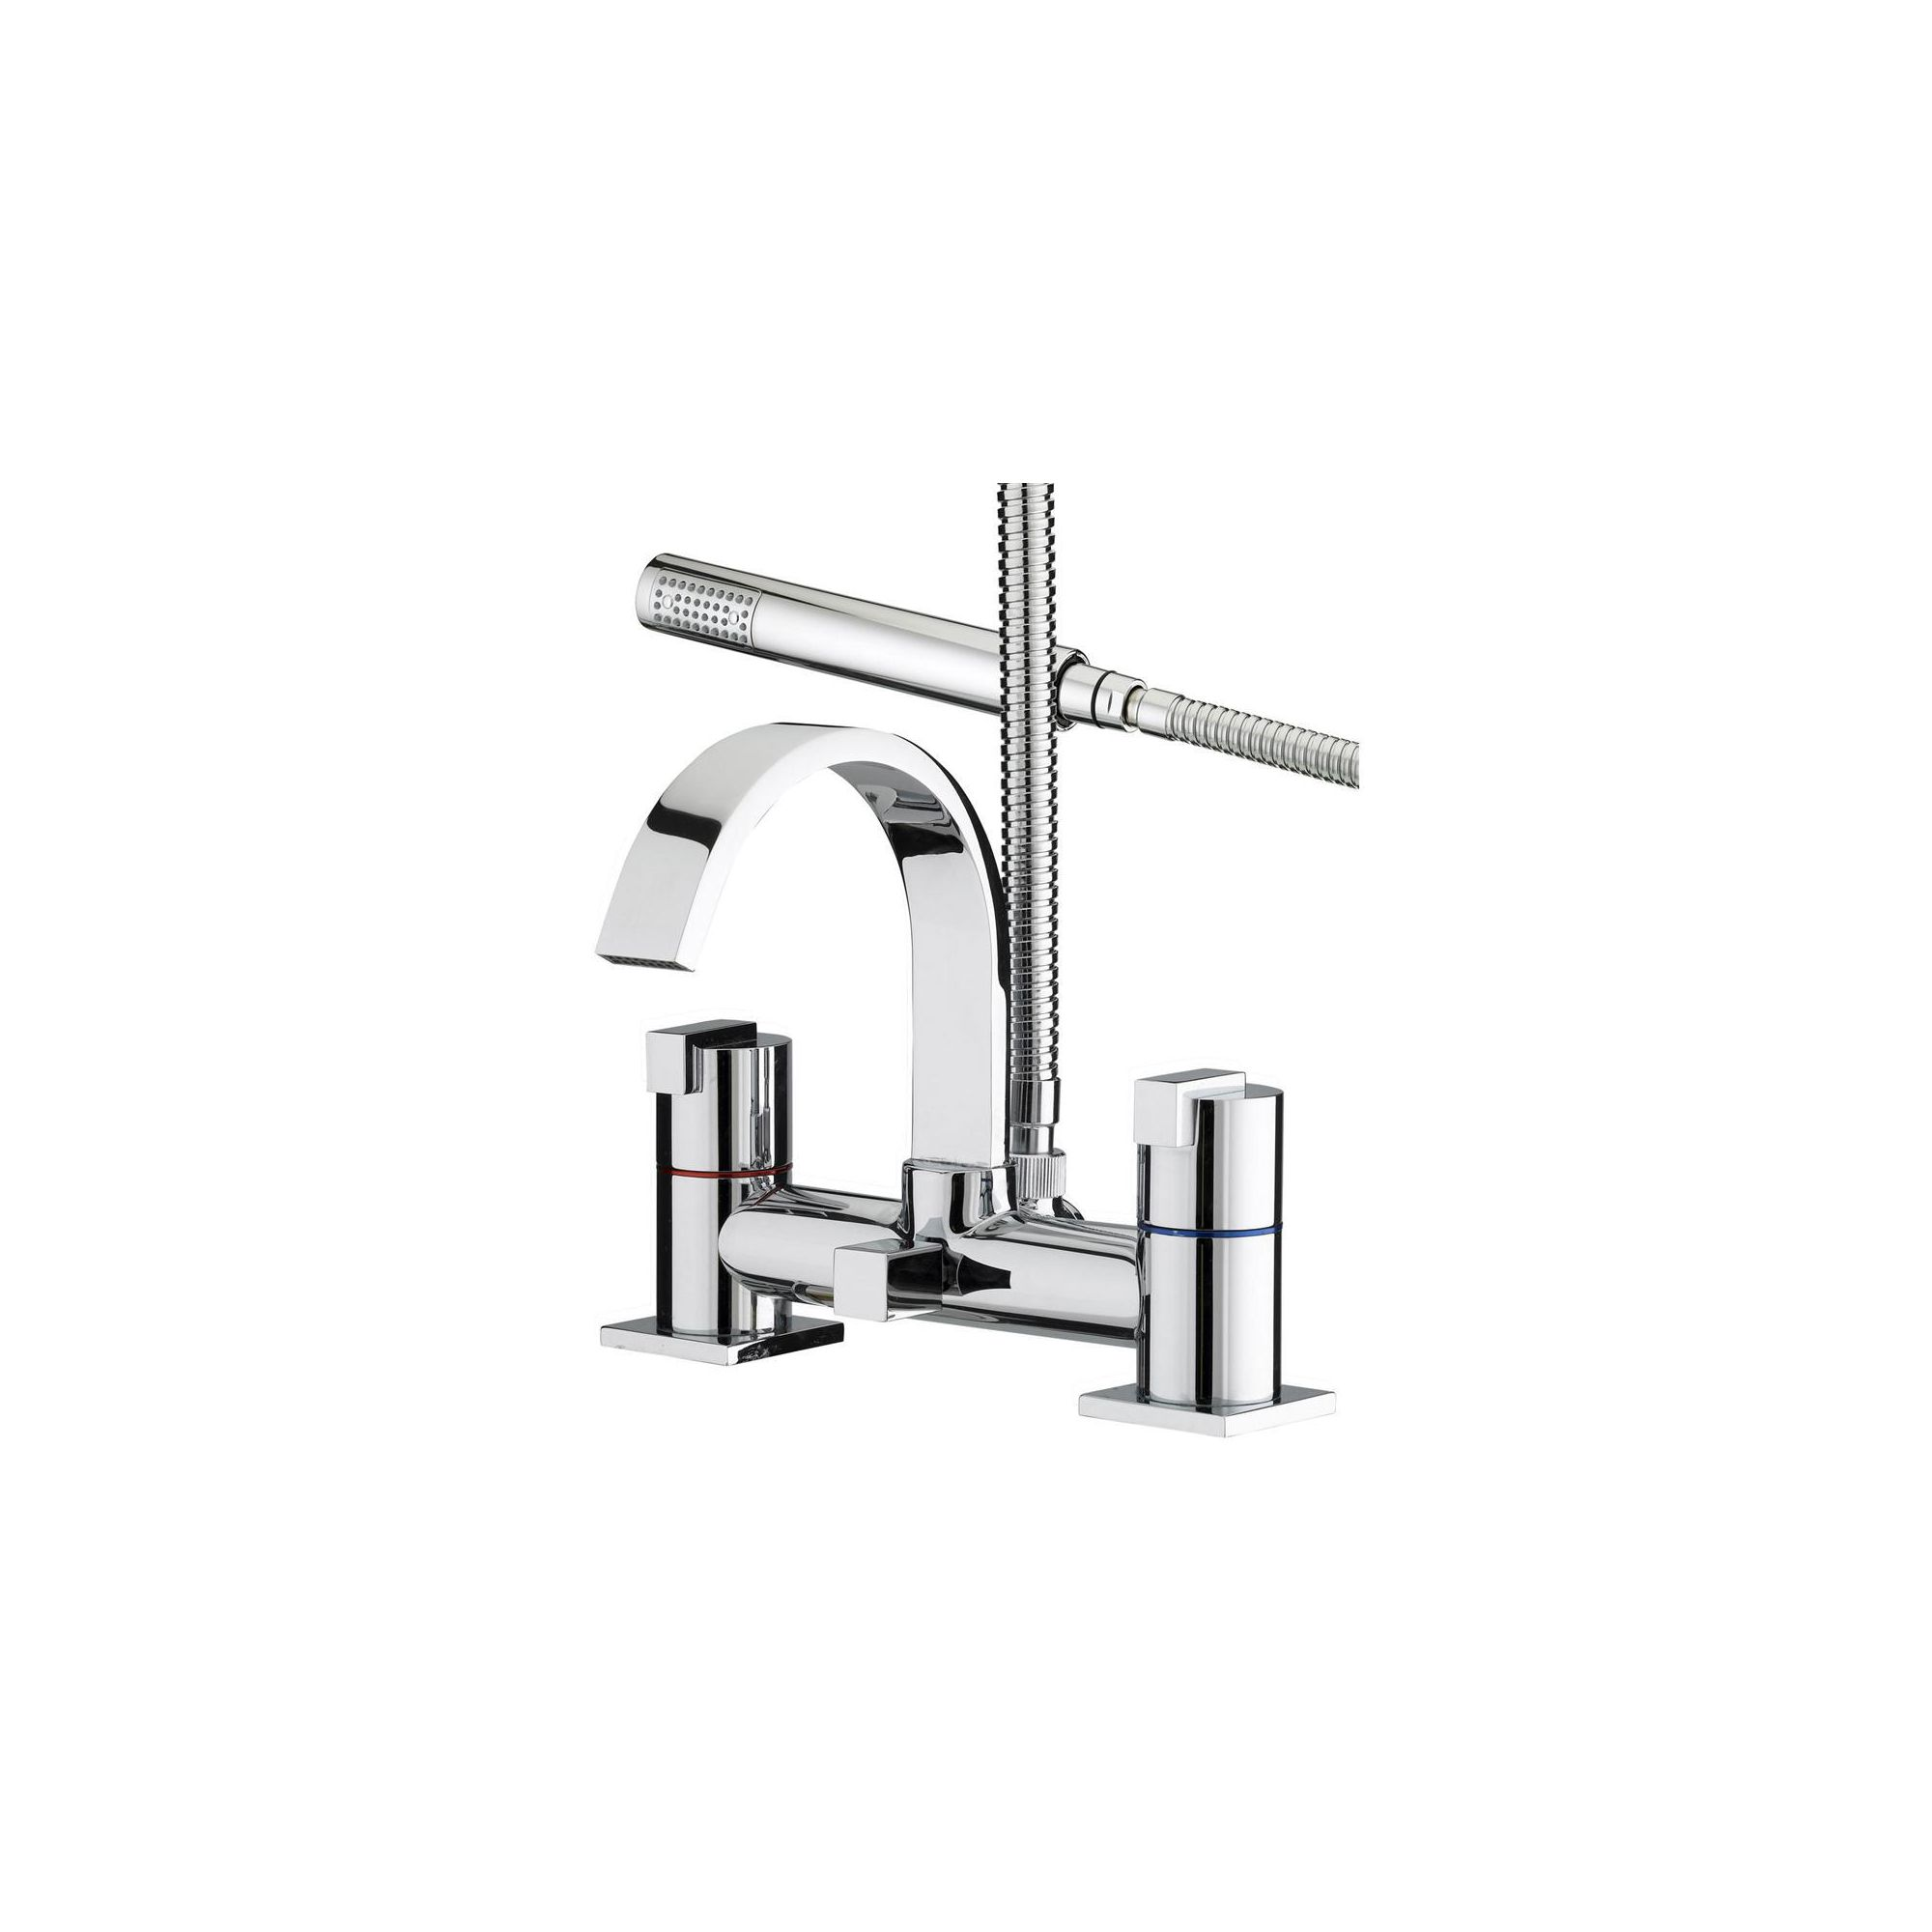 Bristan Chill Bath Shower Mixer Tap Chrome at Tescos Direct